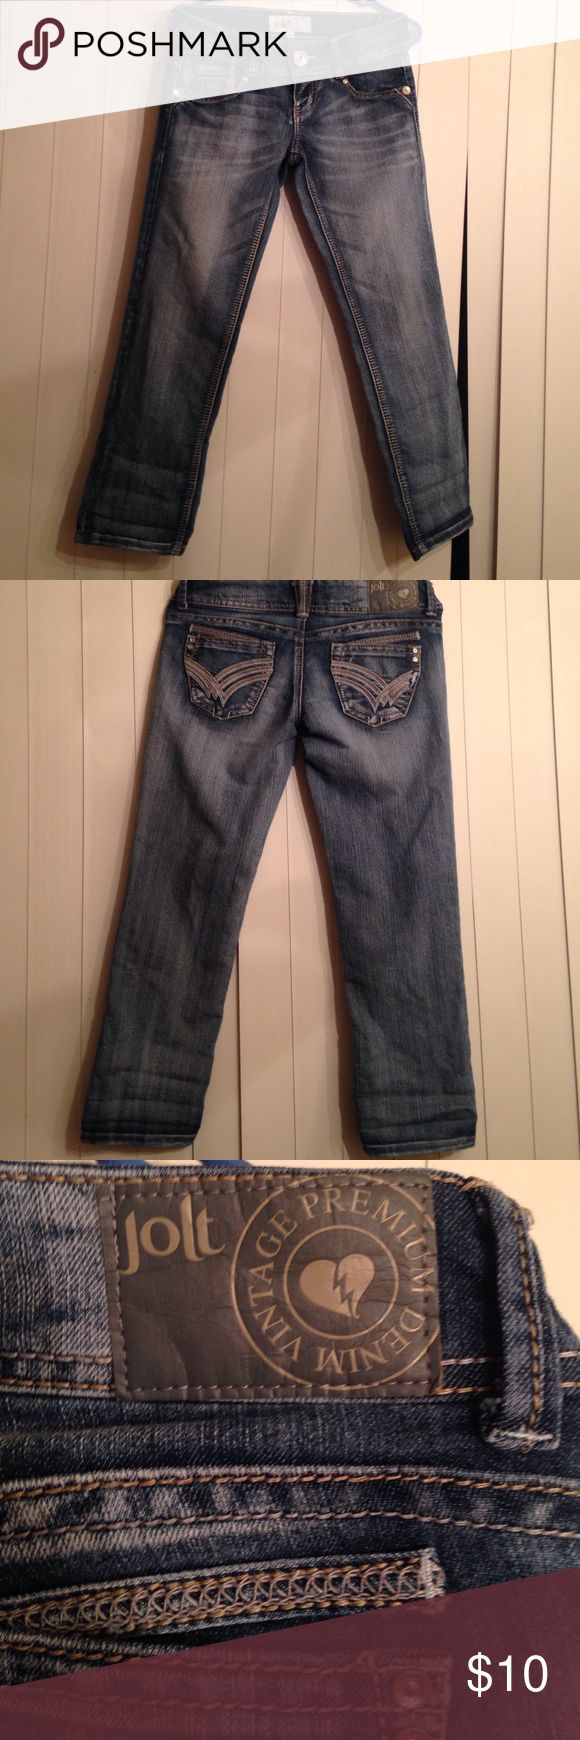 Jolt capris jeans/pants size 3 Jolt Capri Jeans 👖 in great condition. From a smoke free home with fur baby 🐶 Jolt Jeans Ankle & Cropped